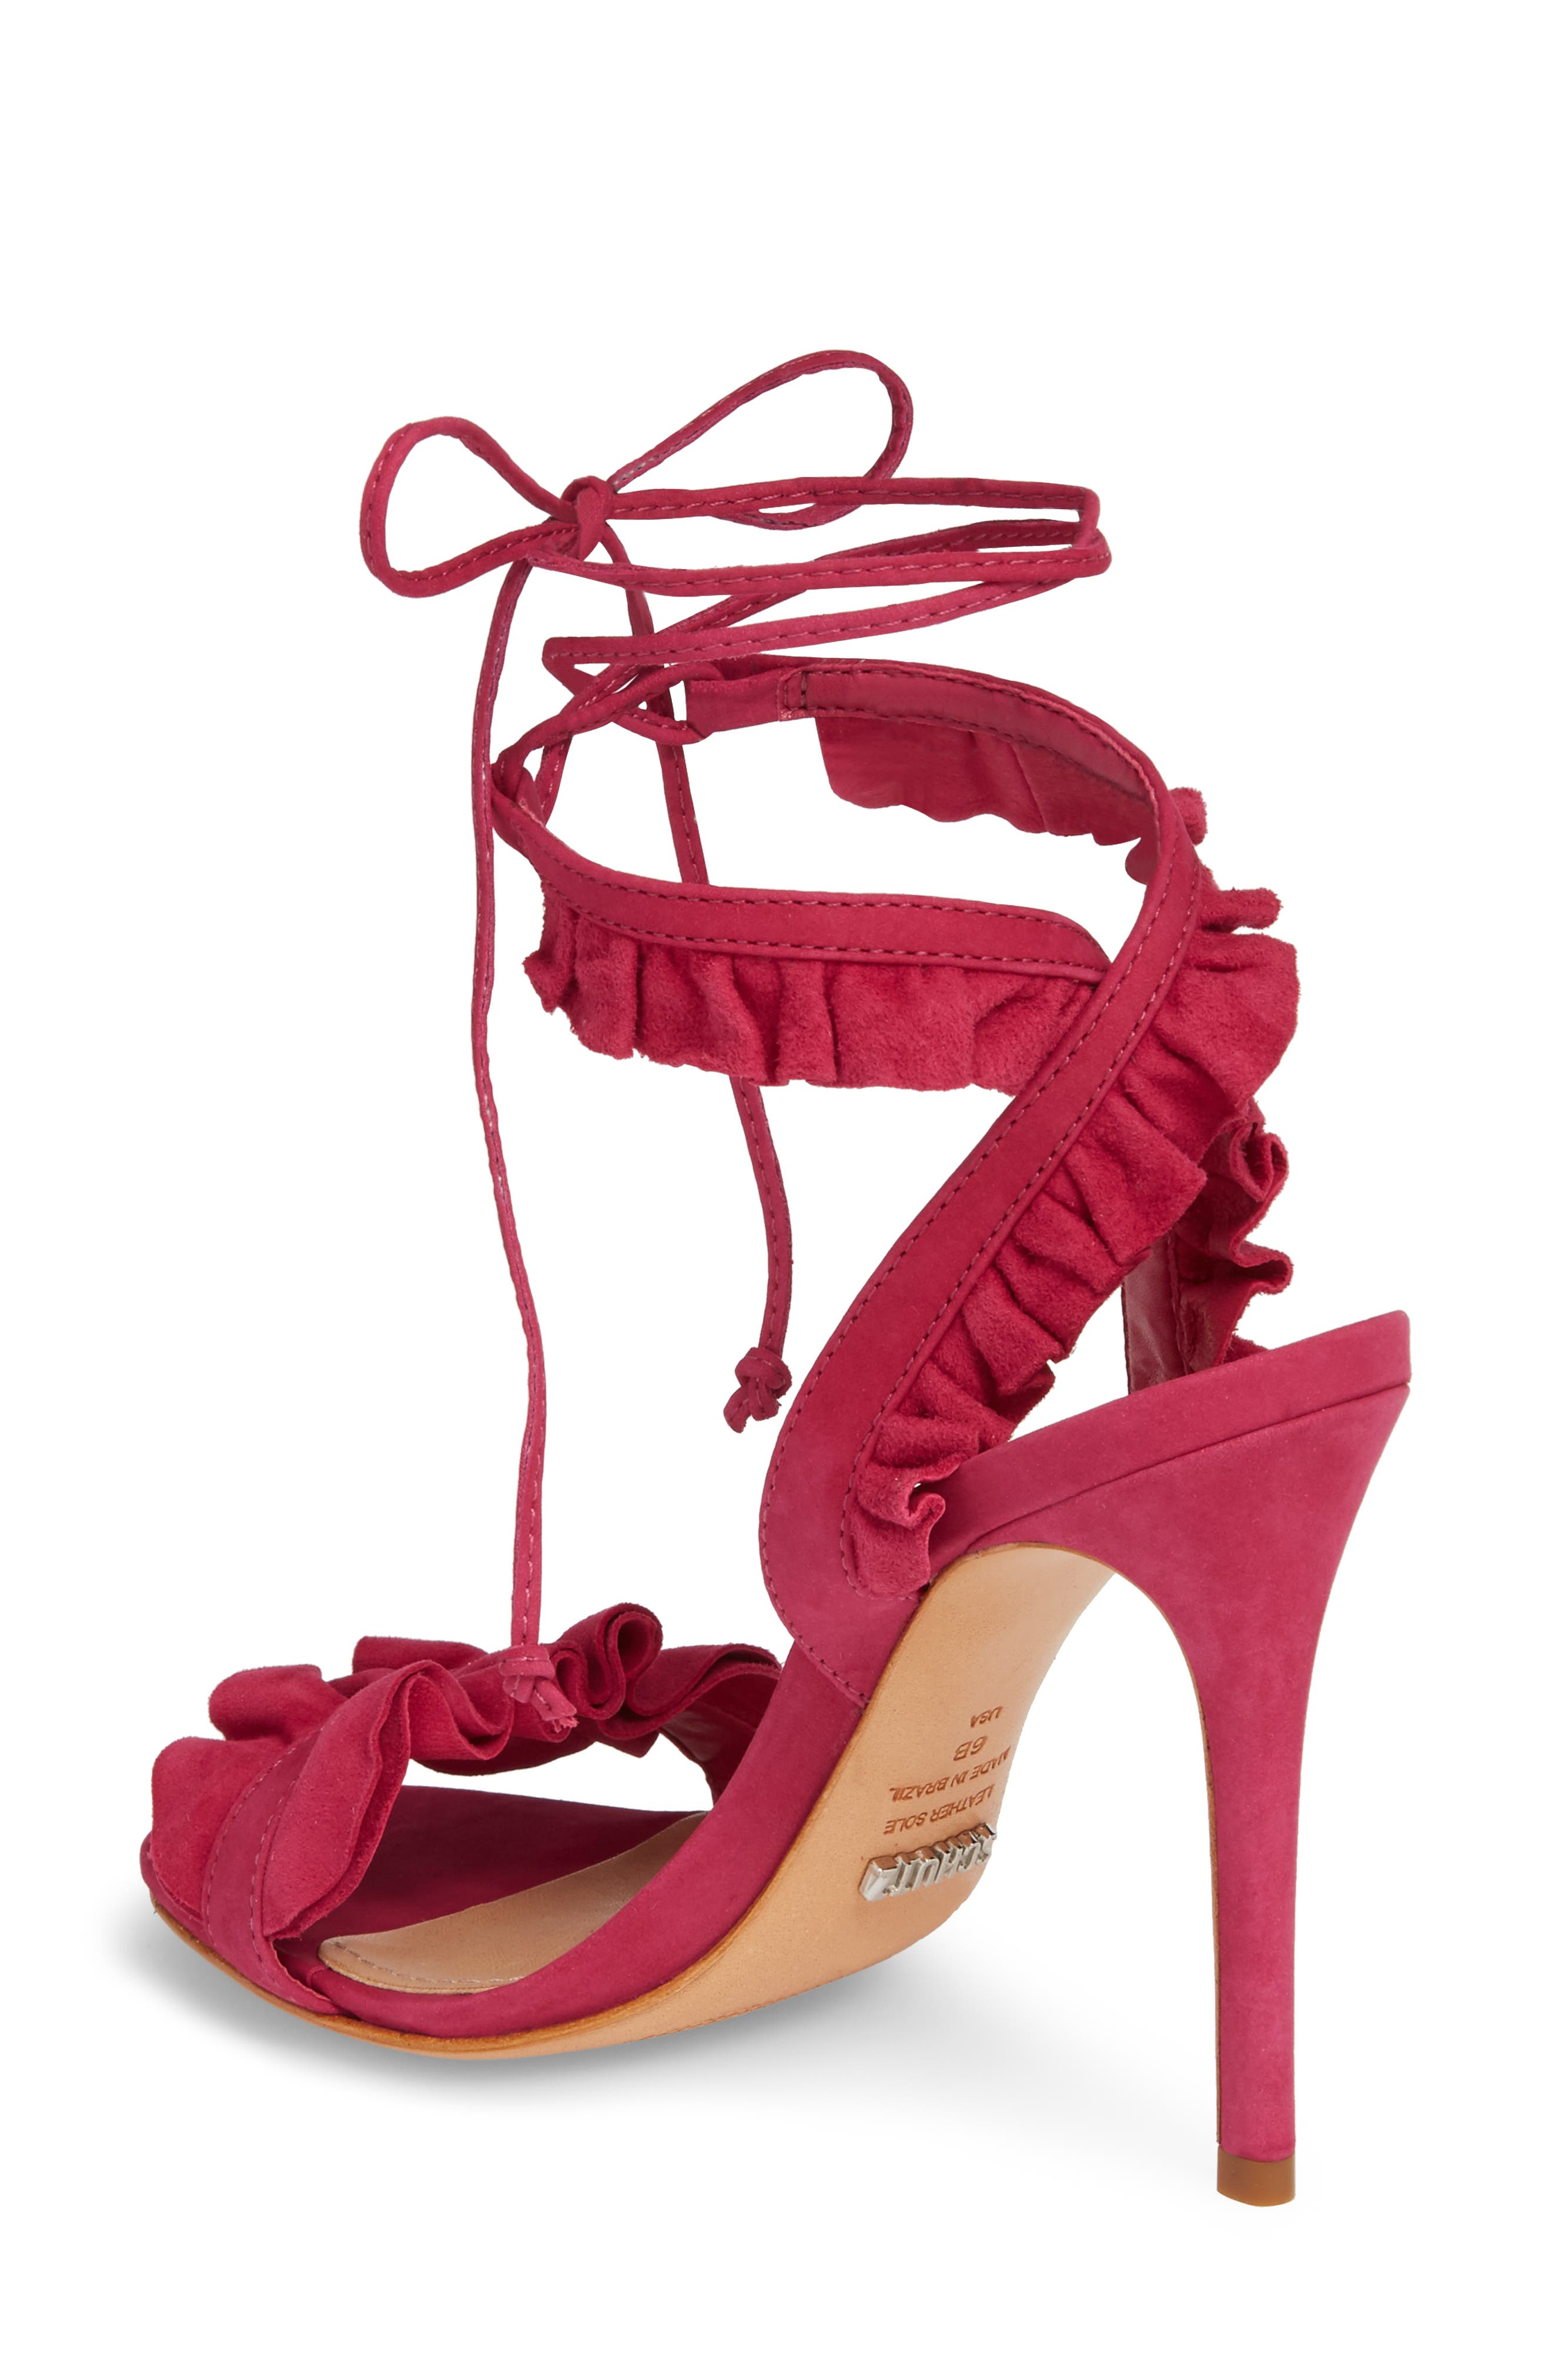 Irem Lace-UP Sandal,                             Alternate thumbnail 2, color,                             Bright Rose Nubuck Leather